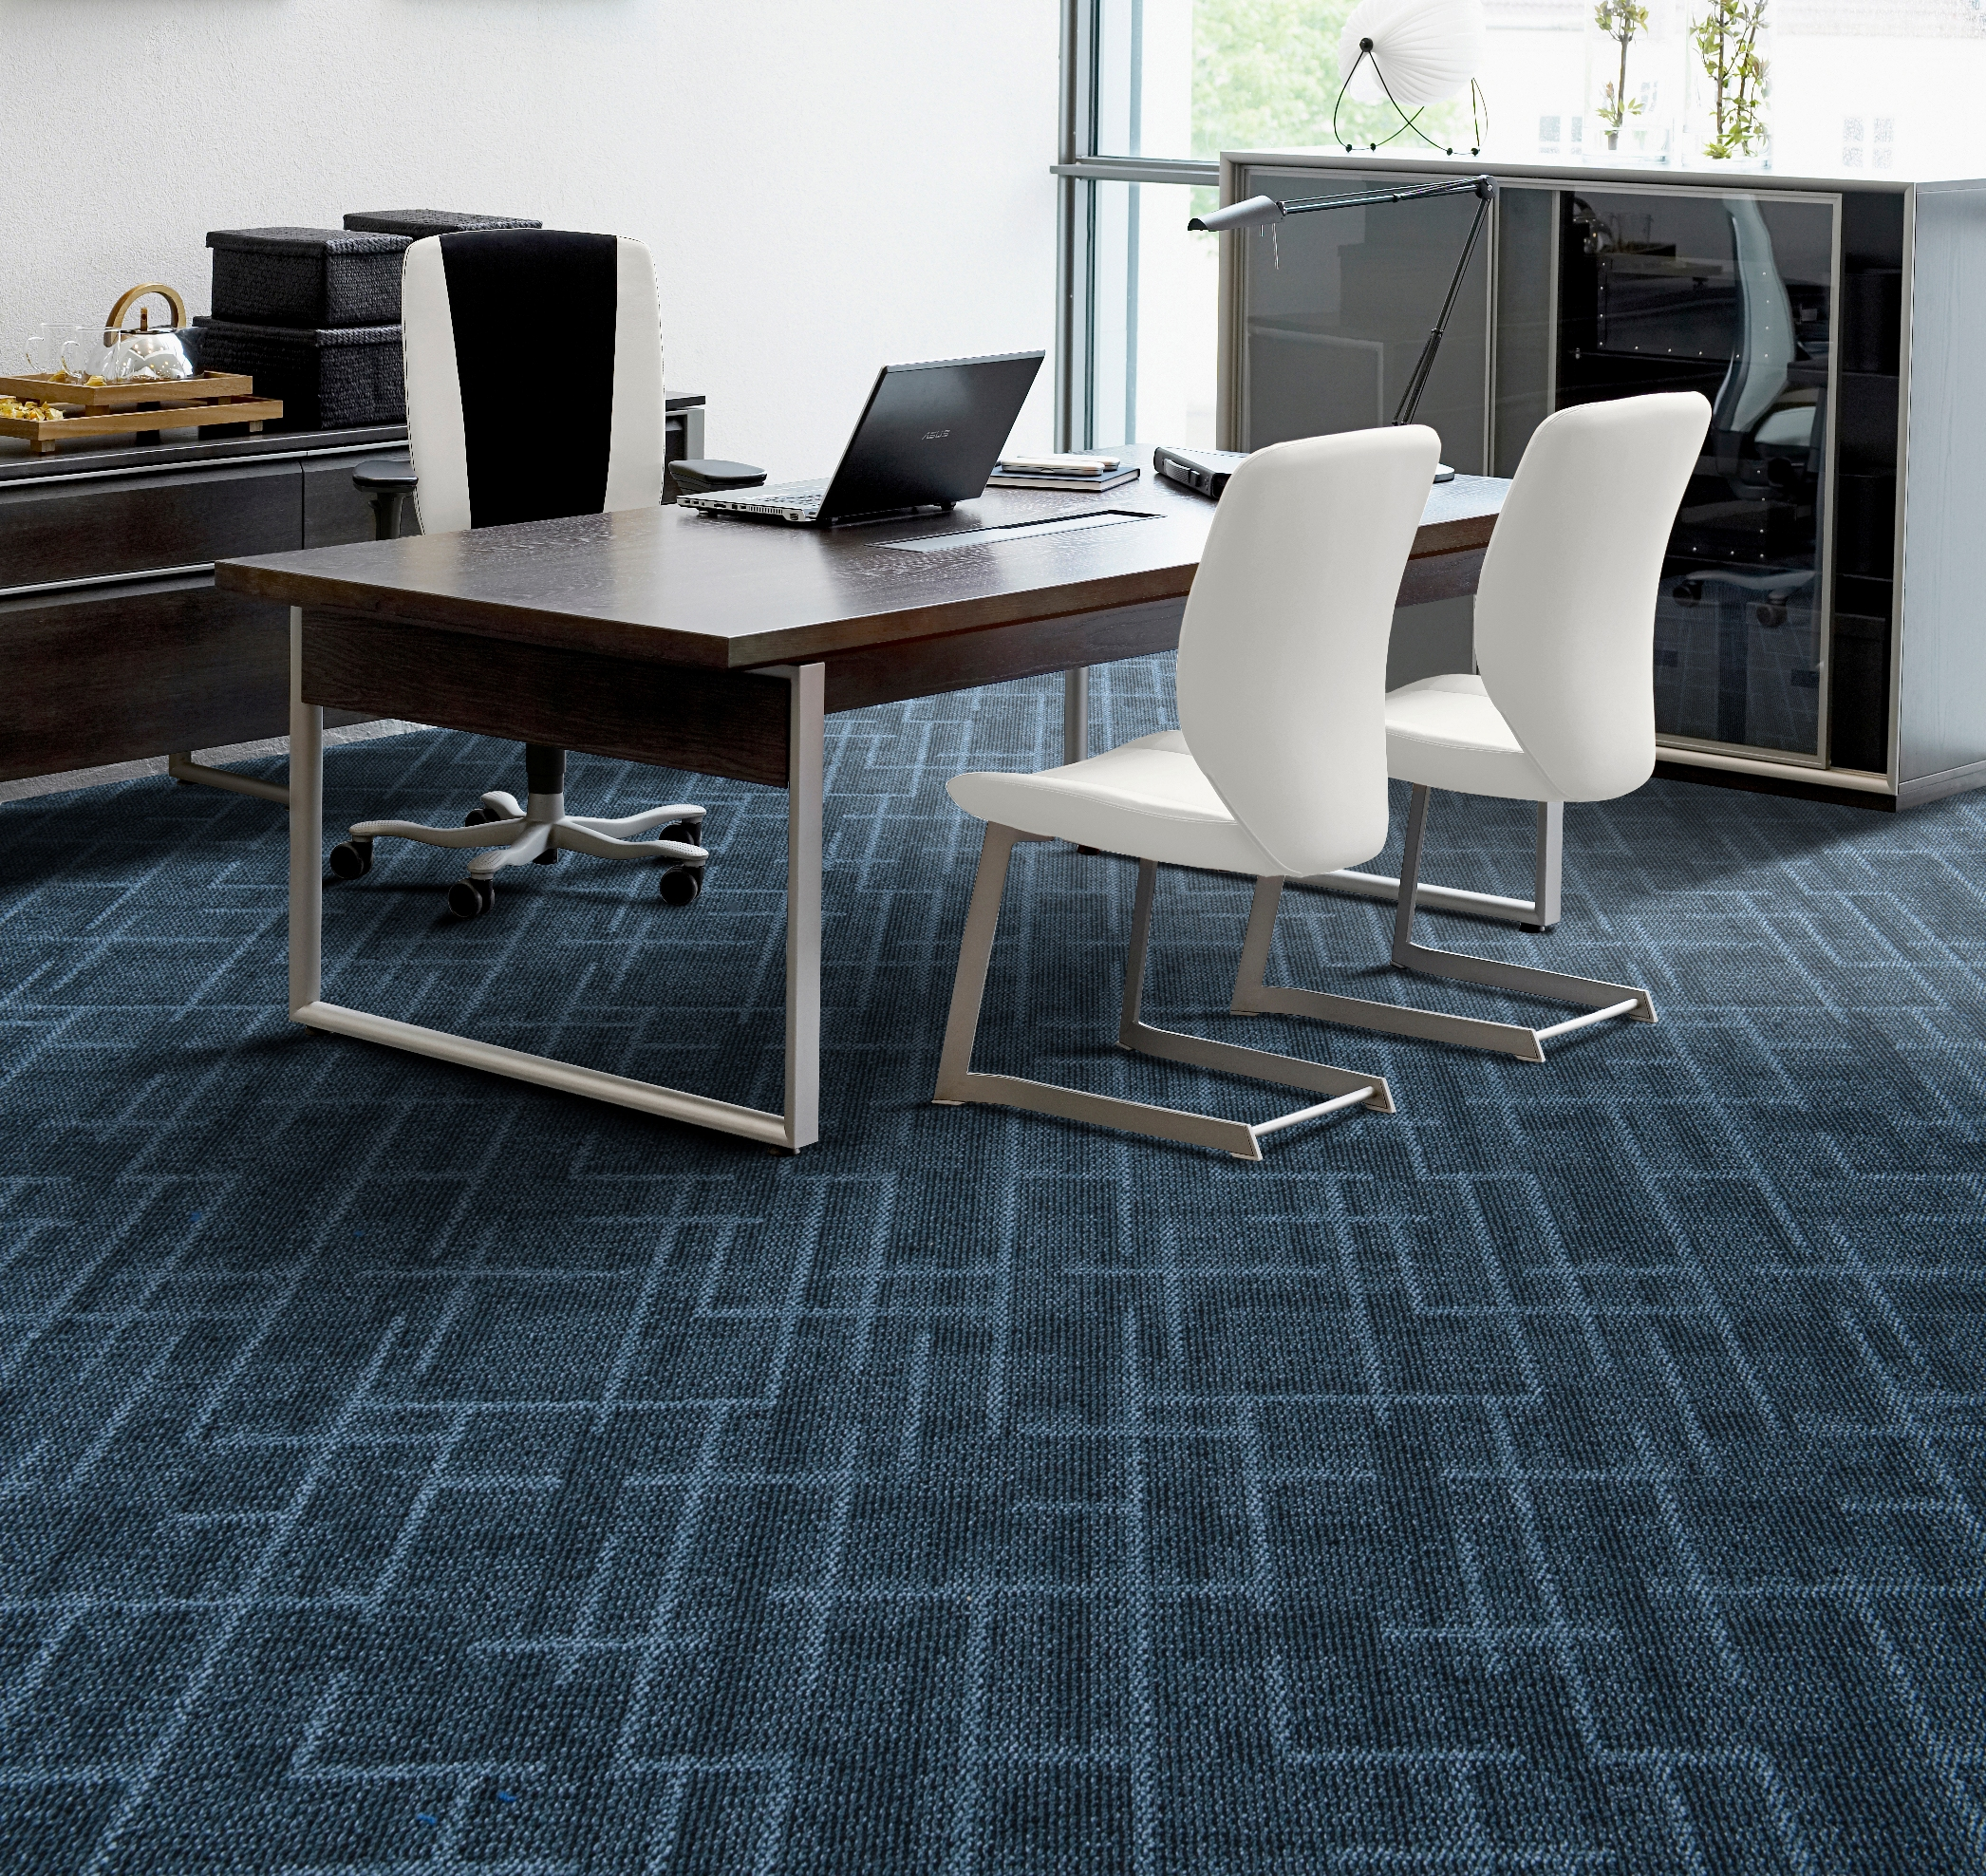 office carpets buy high quality broadloom carpets in dubai,abu dhabi across uae at best ITHJBPU